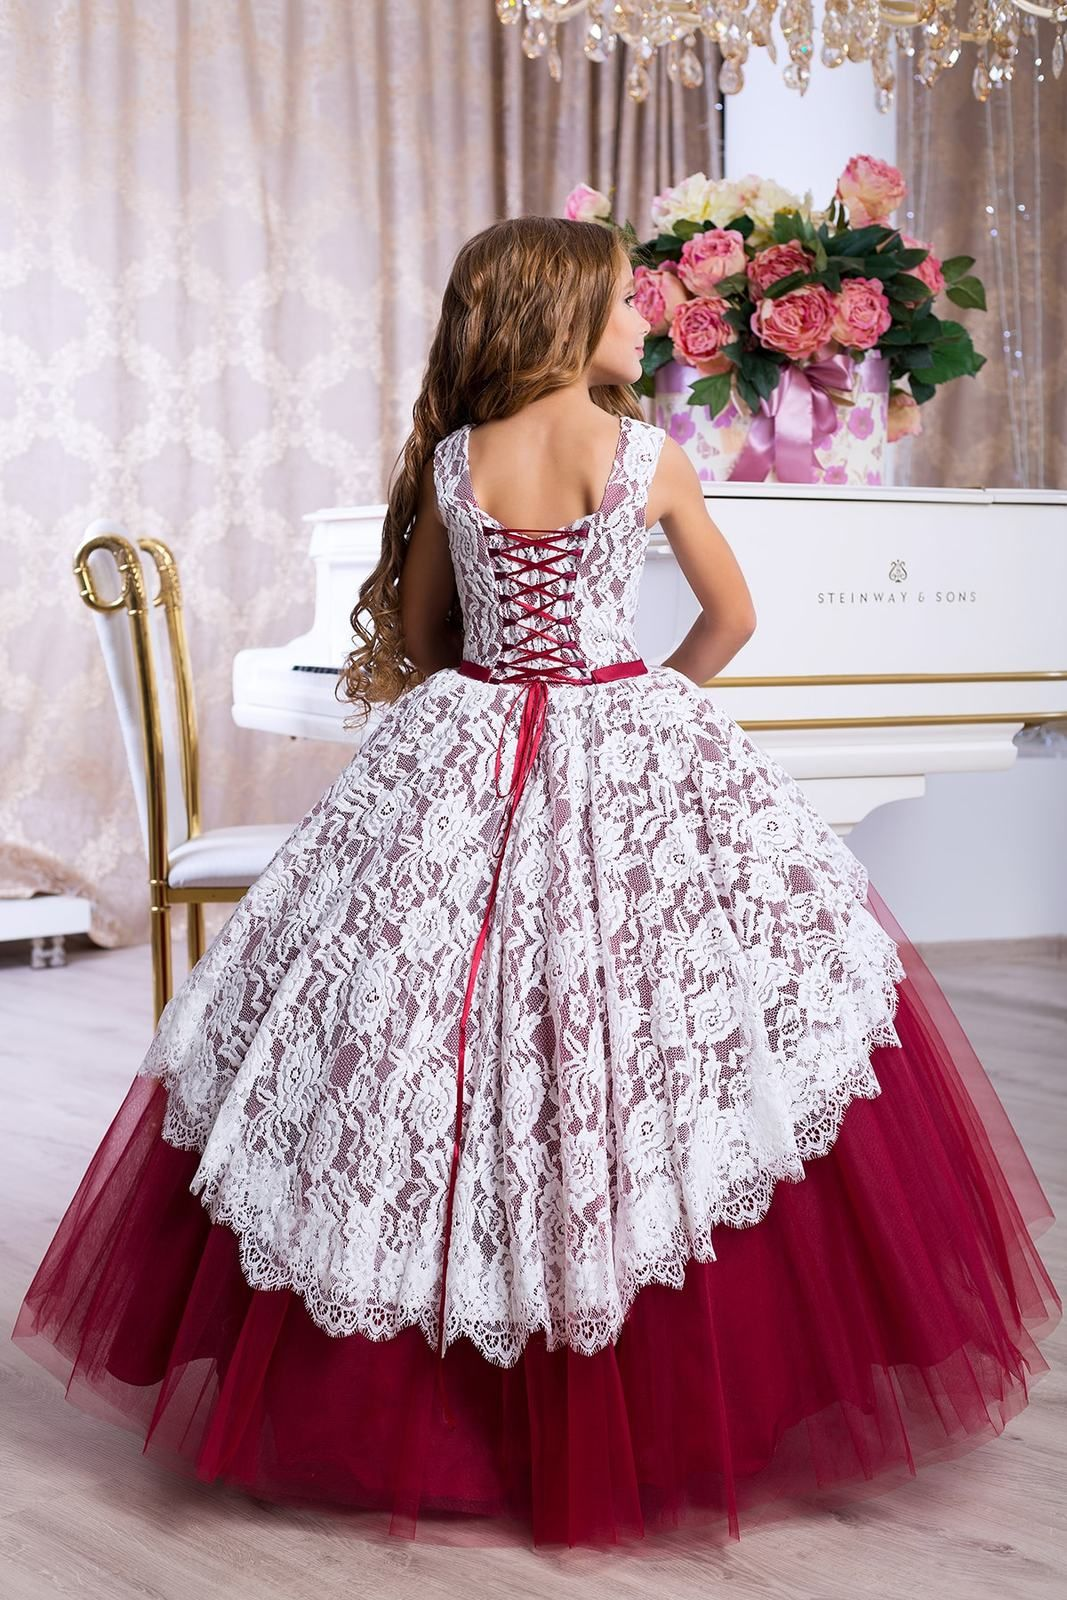 Kids Baby Flower Girl Dress Formal Party Prom Gown Princess Bridesmaid Wedding